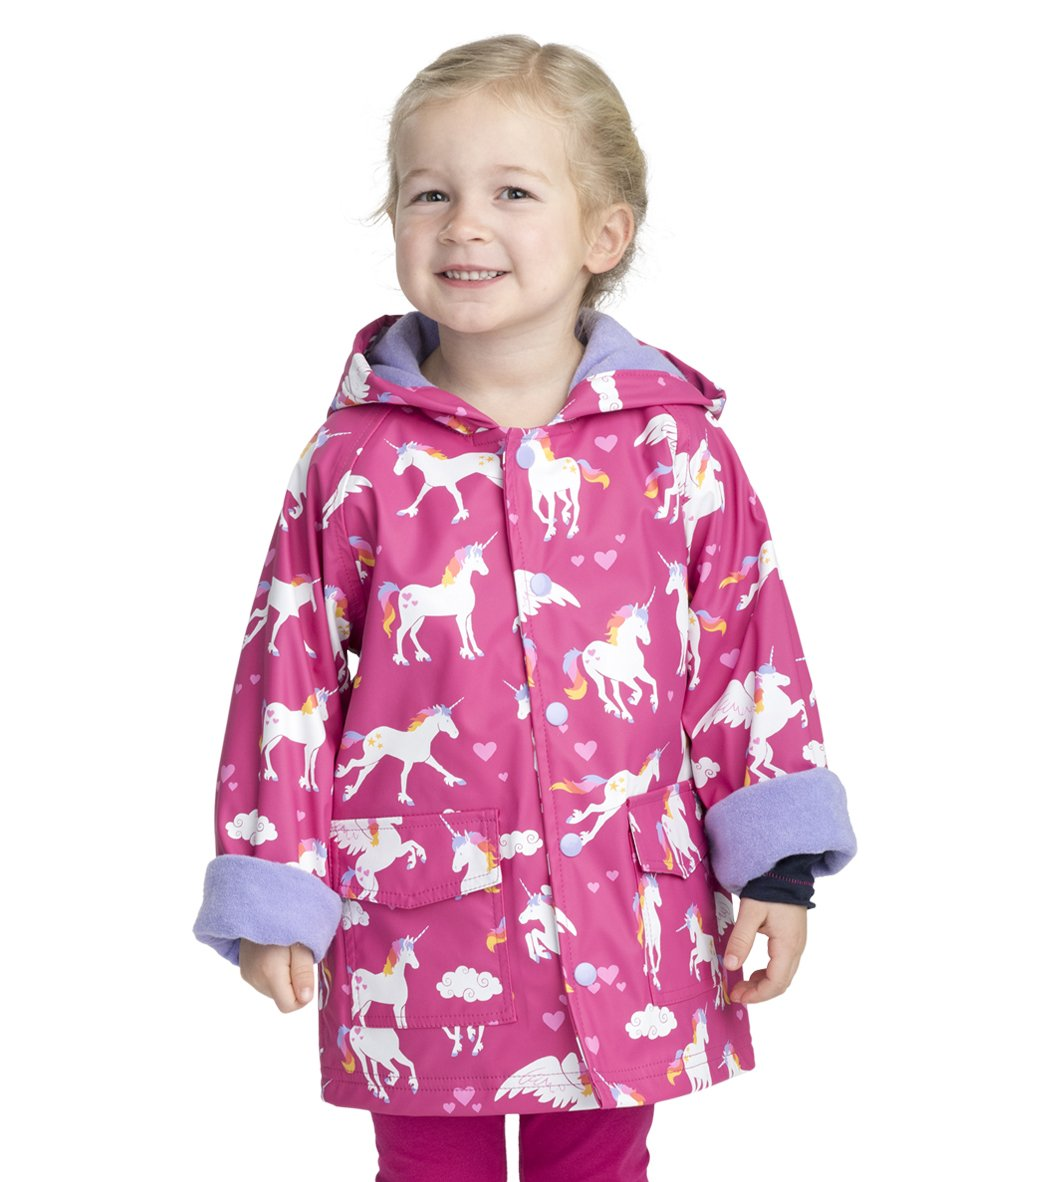 Hatley Girls' Little Printed Raincoats, Rainbow Unicorns, 4 Years by Hatley